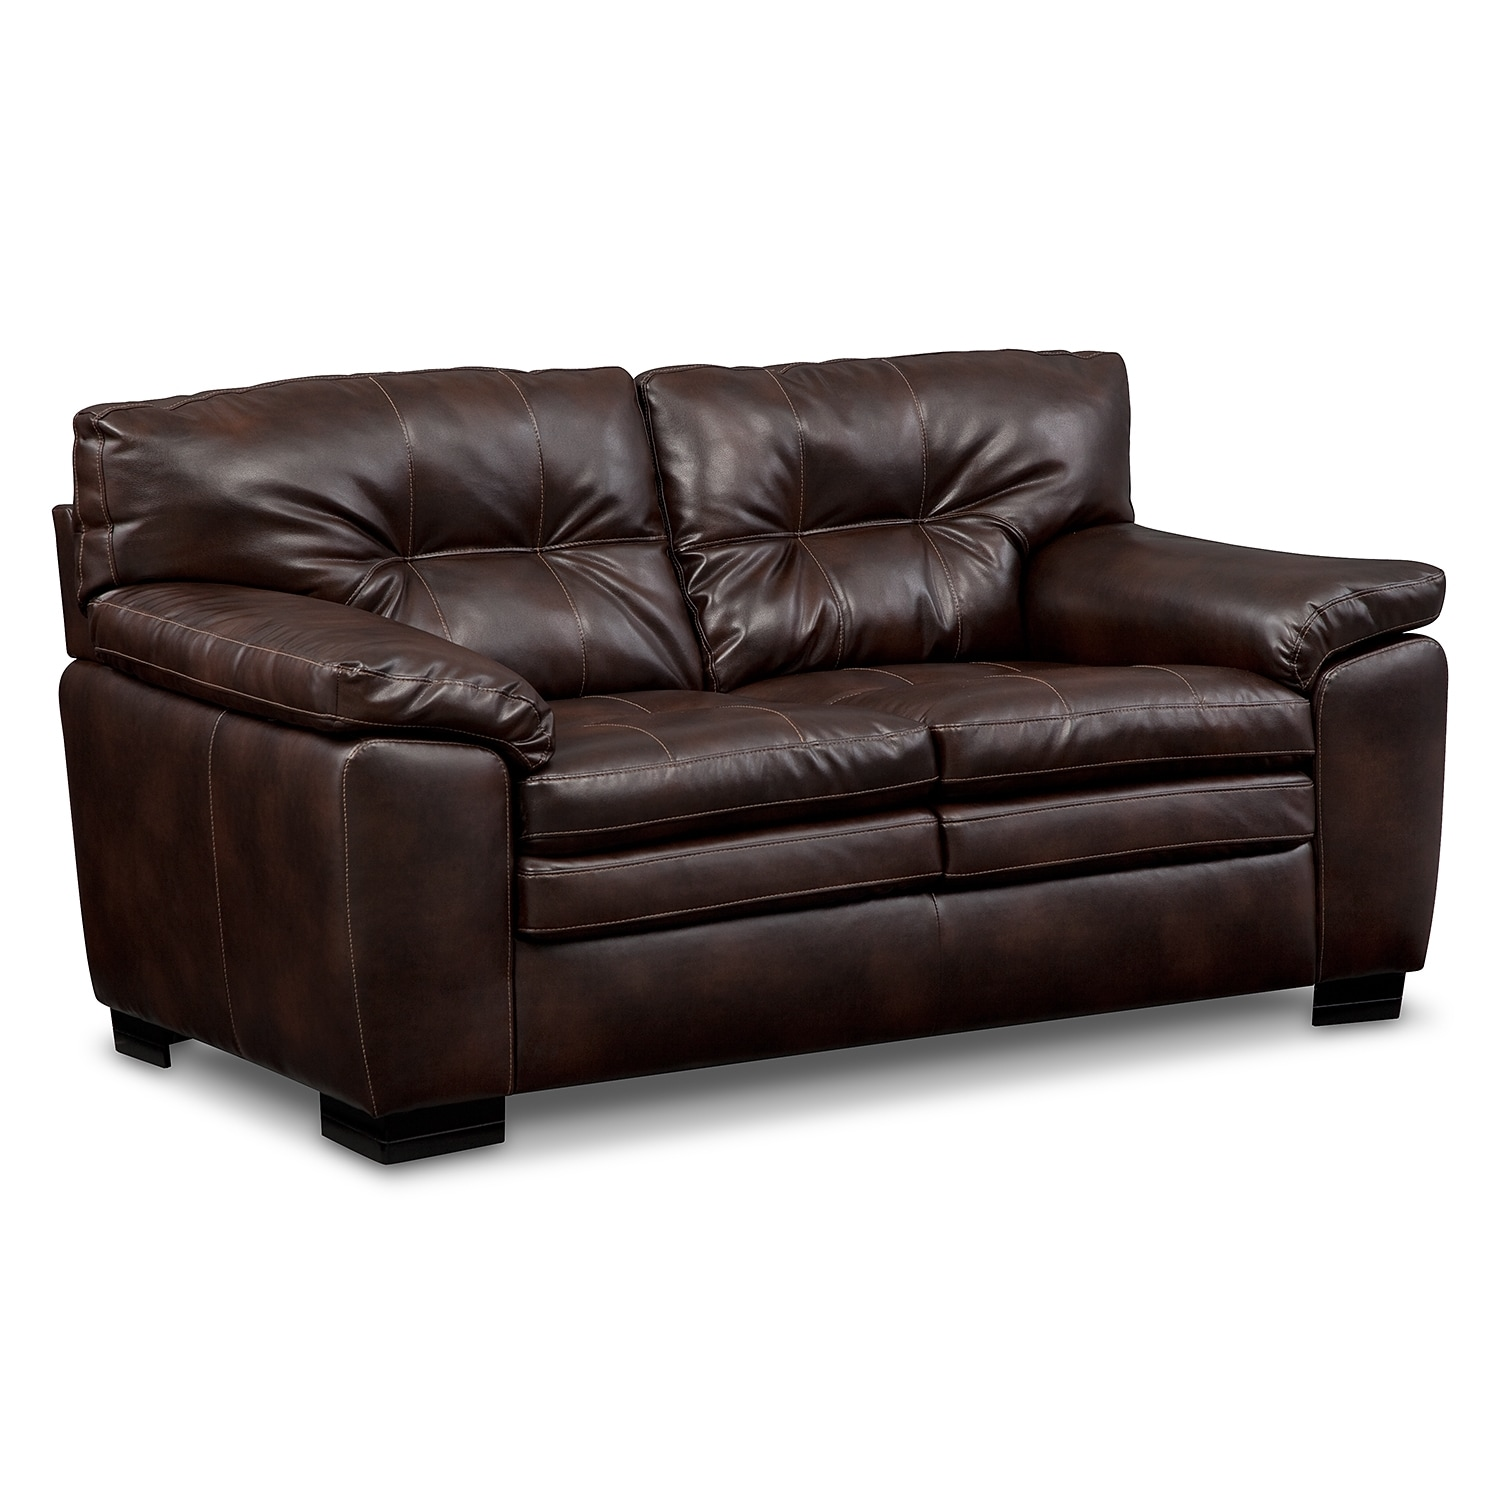 Legend Brown Loveseat